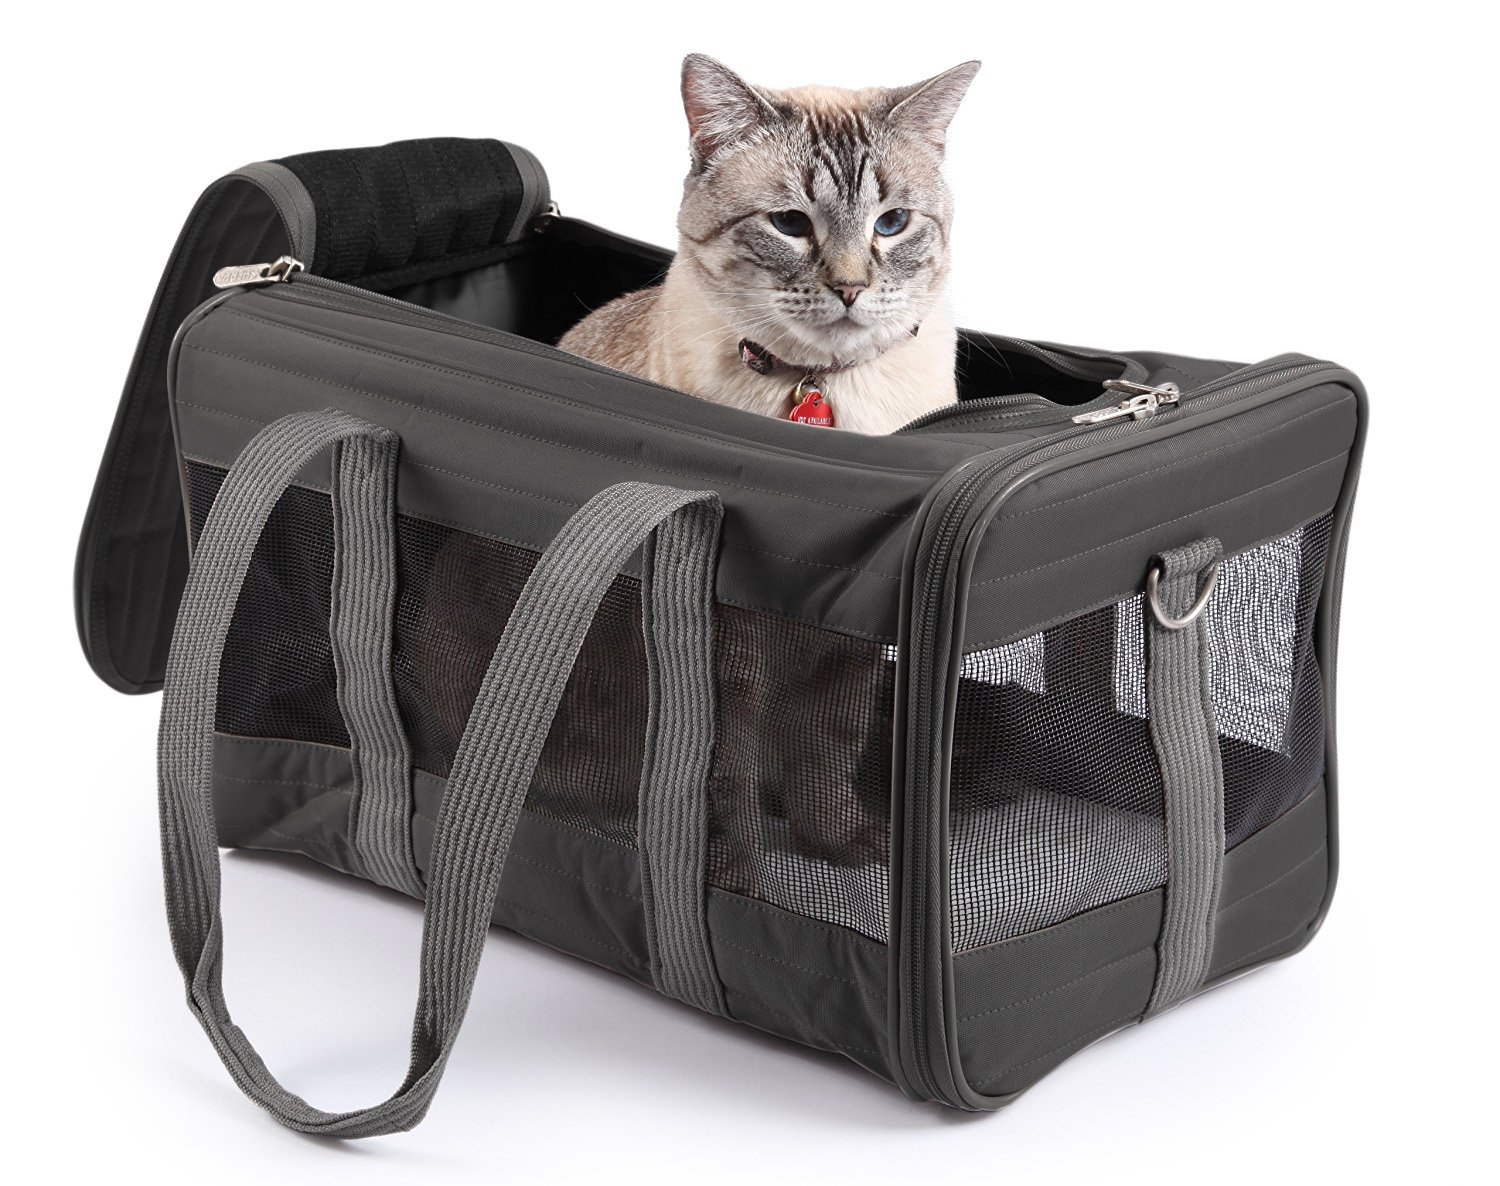 Charcoal Large Charcoal Large Sherpa Travel Original Deluxe Airline Approved Pet Carrier, Large, Charcoal